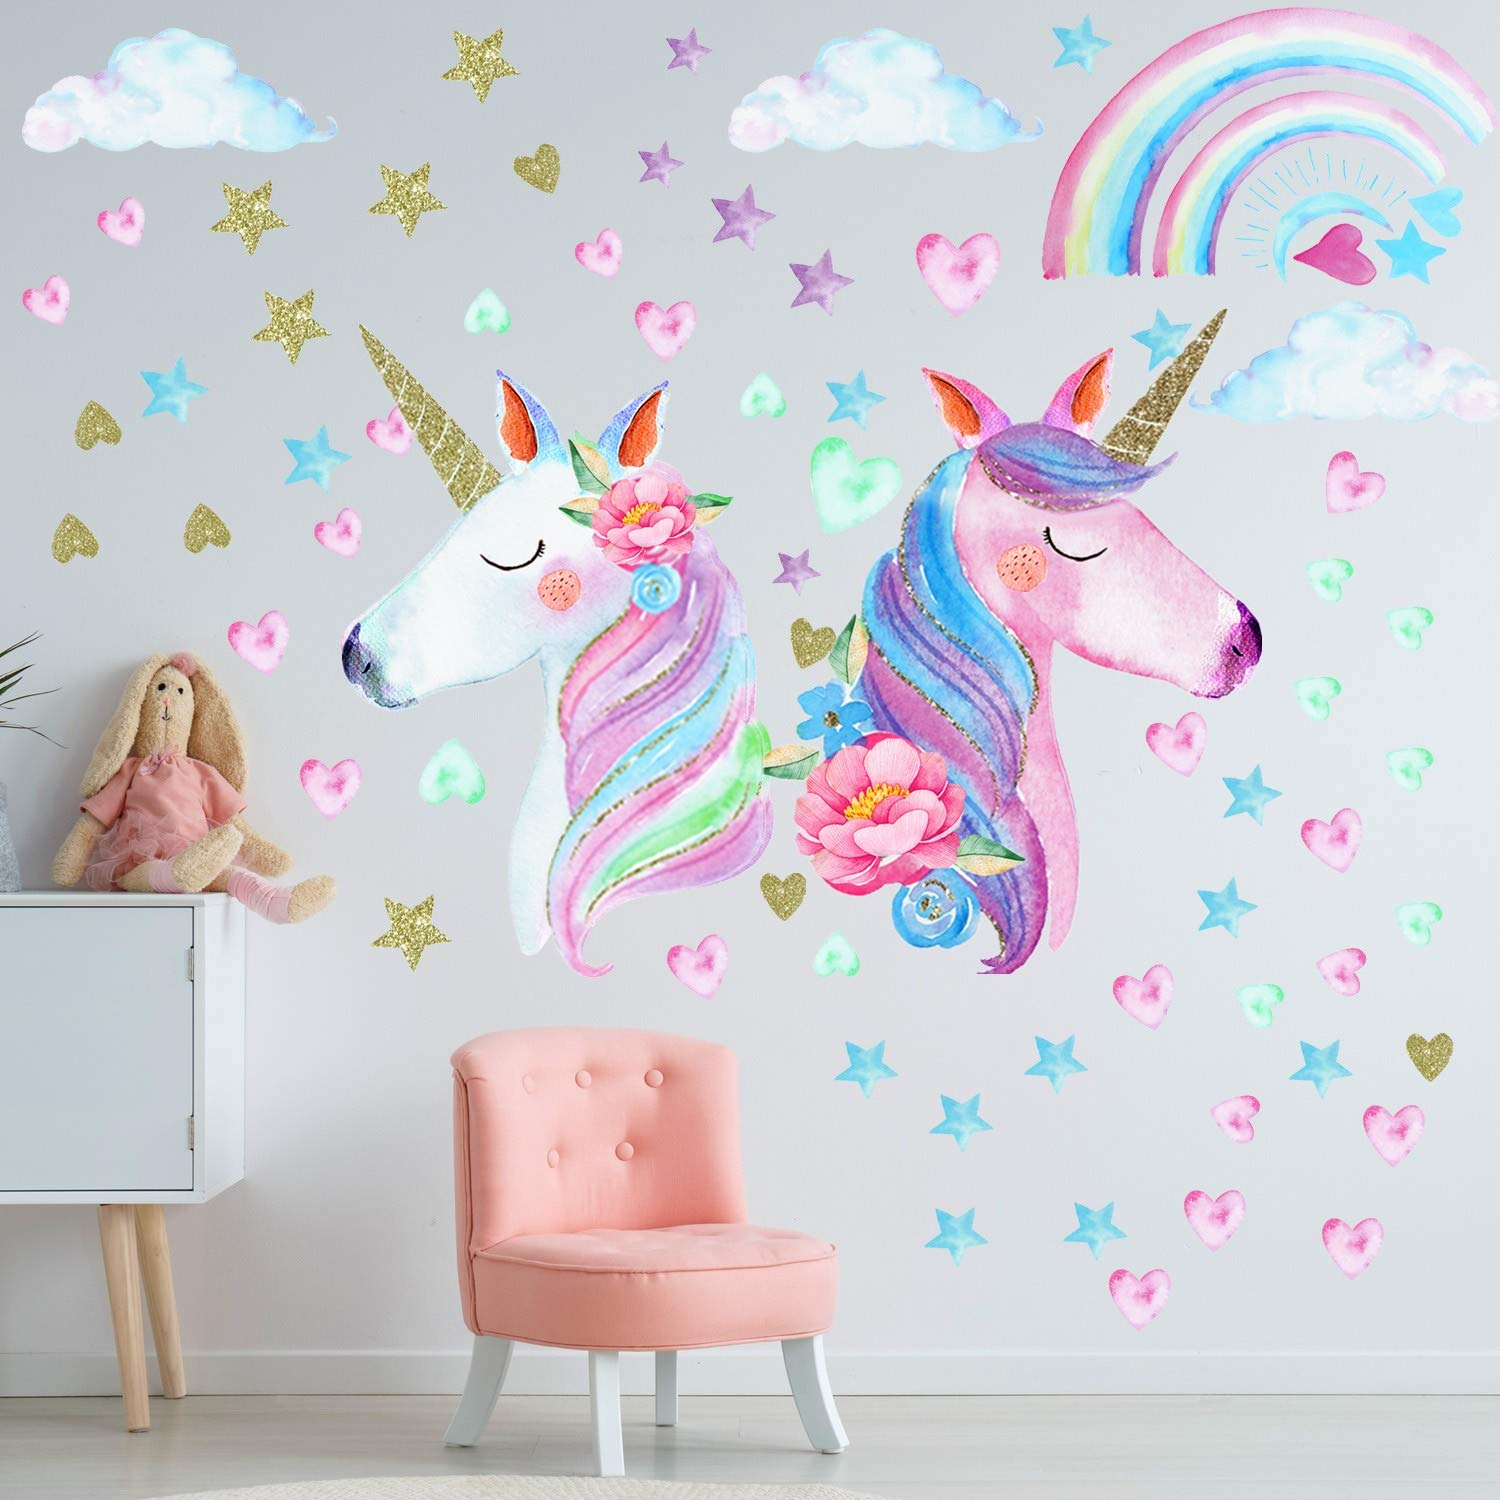 3 Sheets Unicorn Wall Decal Stickers, Large Size Unicorn Rainbow Wall Decor for Girls Kids Bedroom Nursery Christmas Birthday Party Decoration